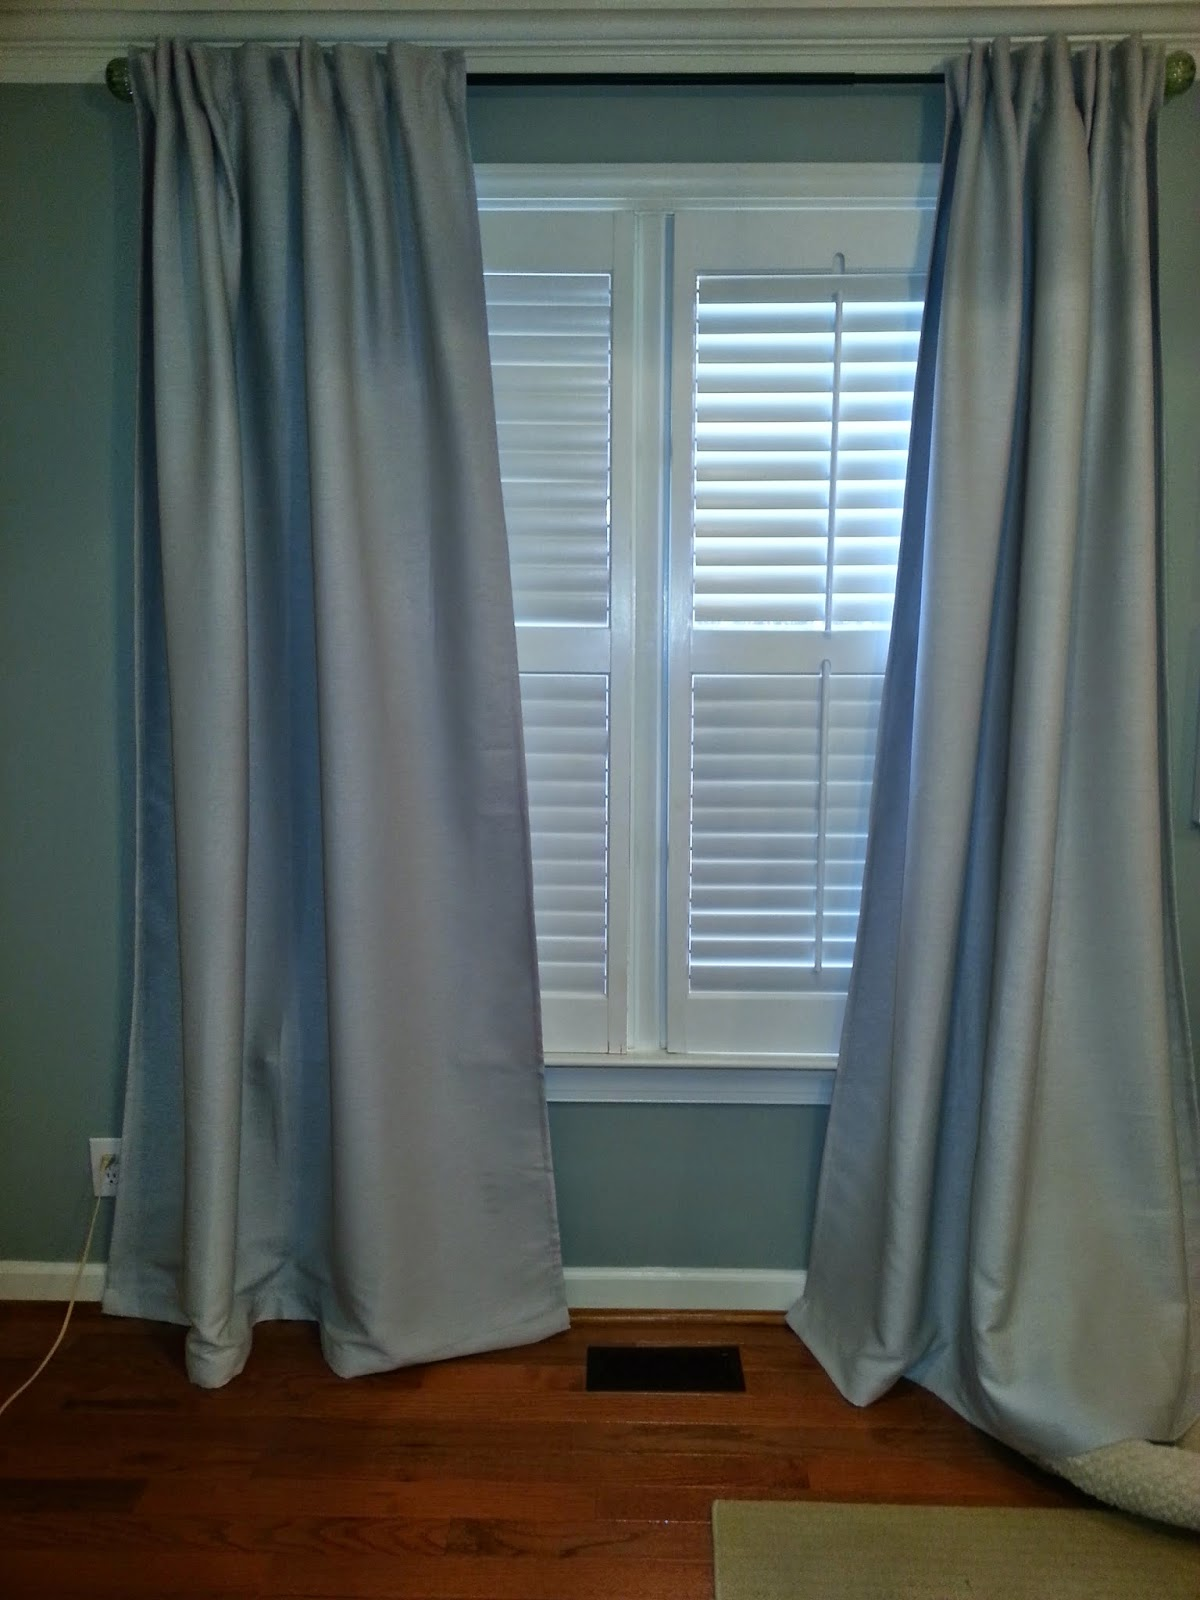 ikea-blekviva-curtains-gray-stripe